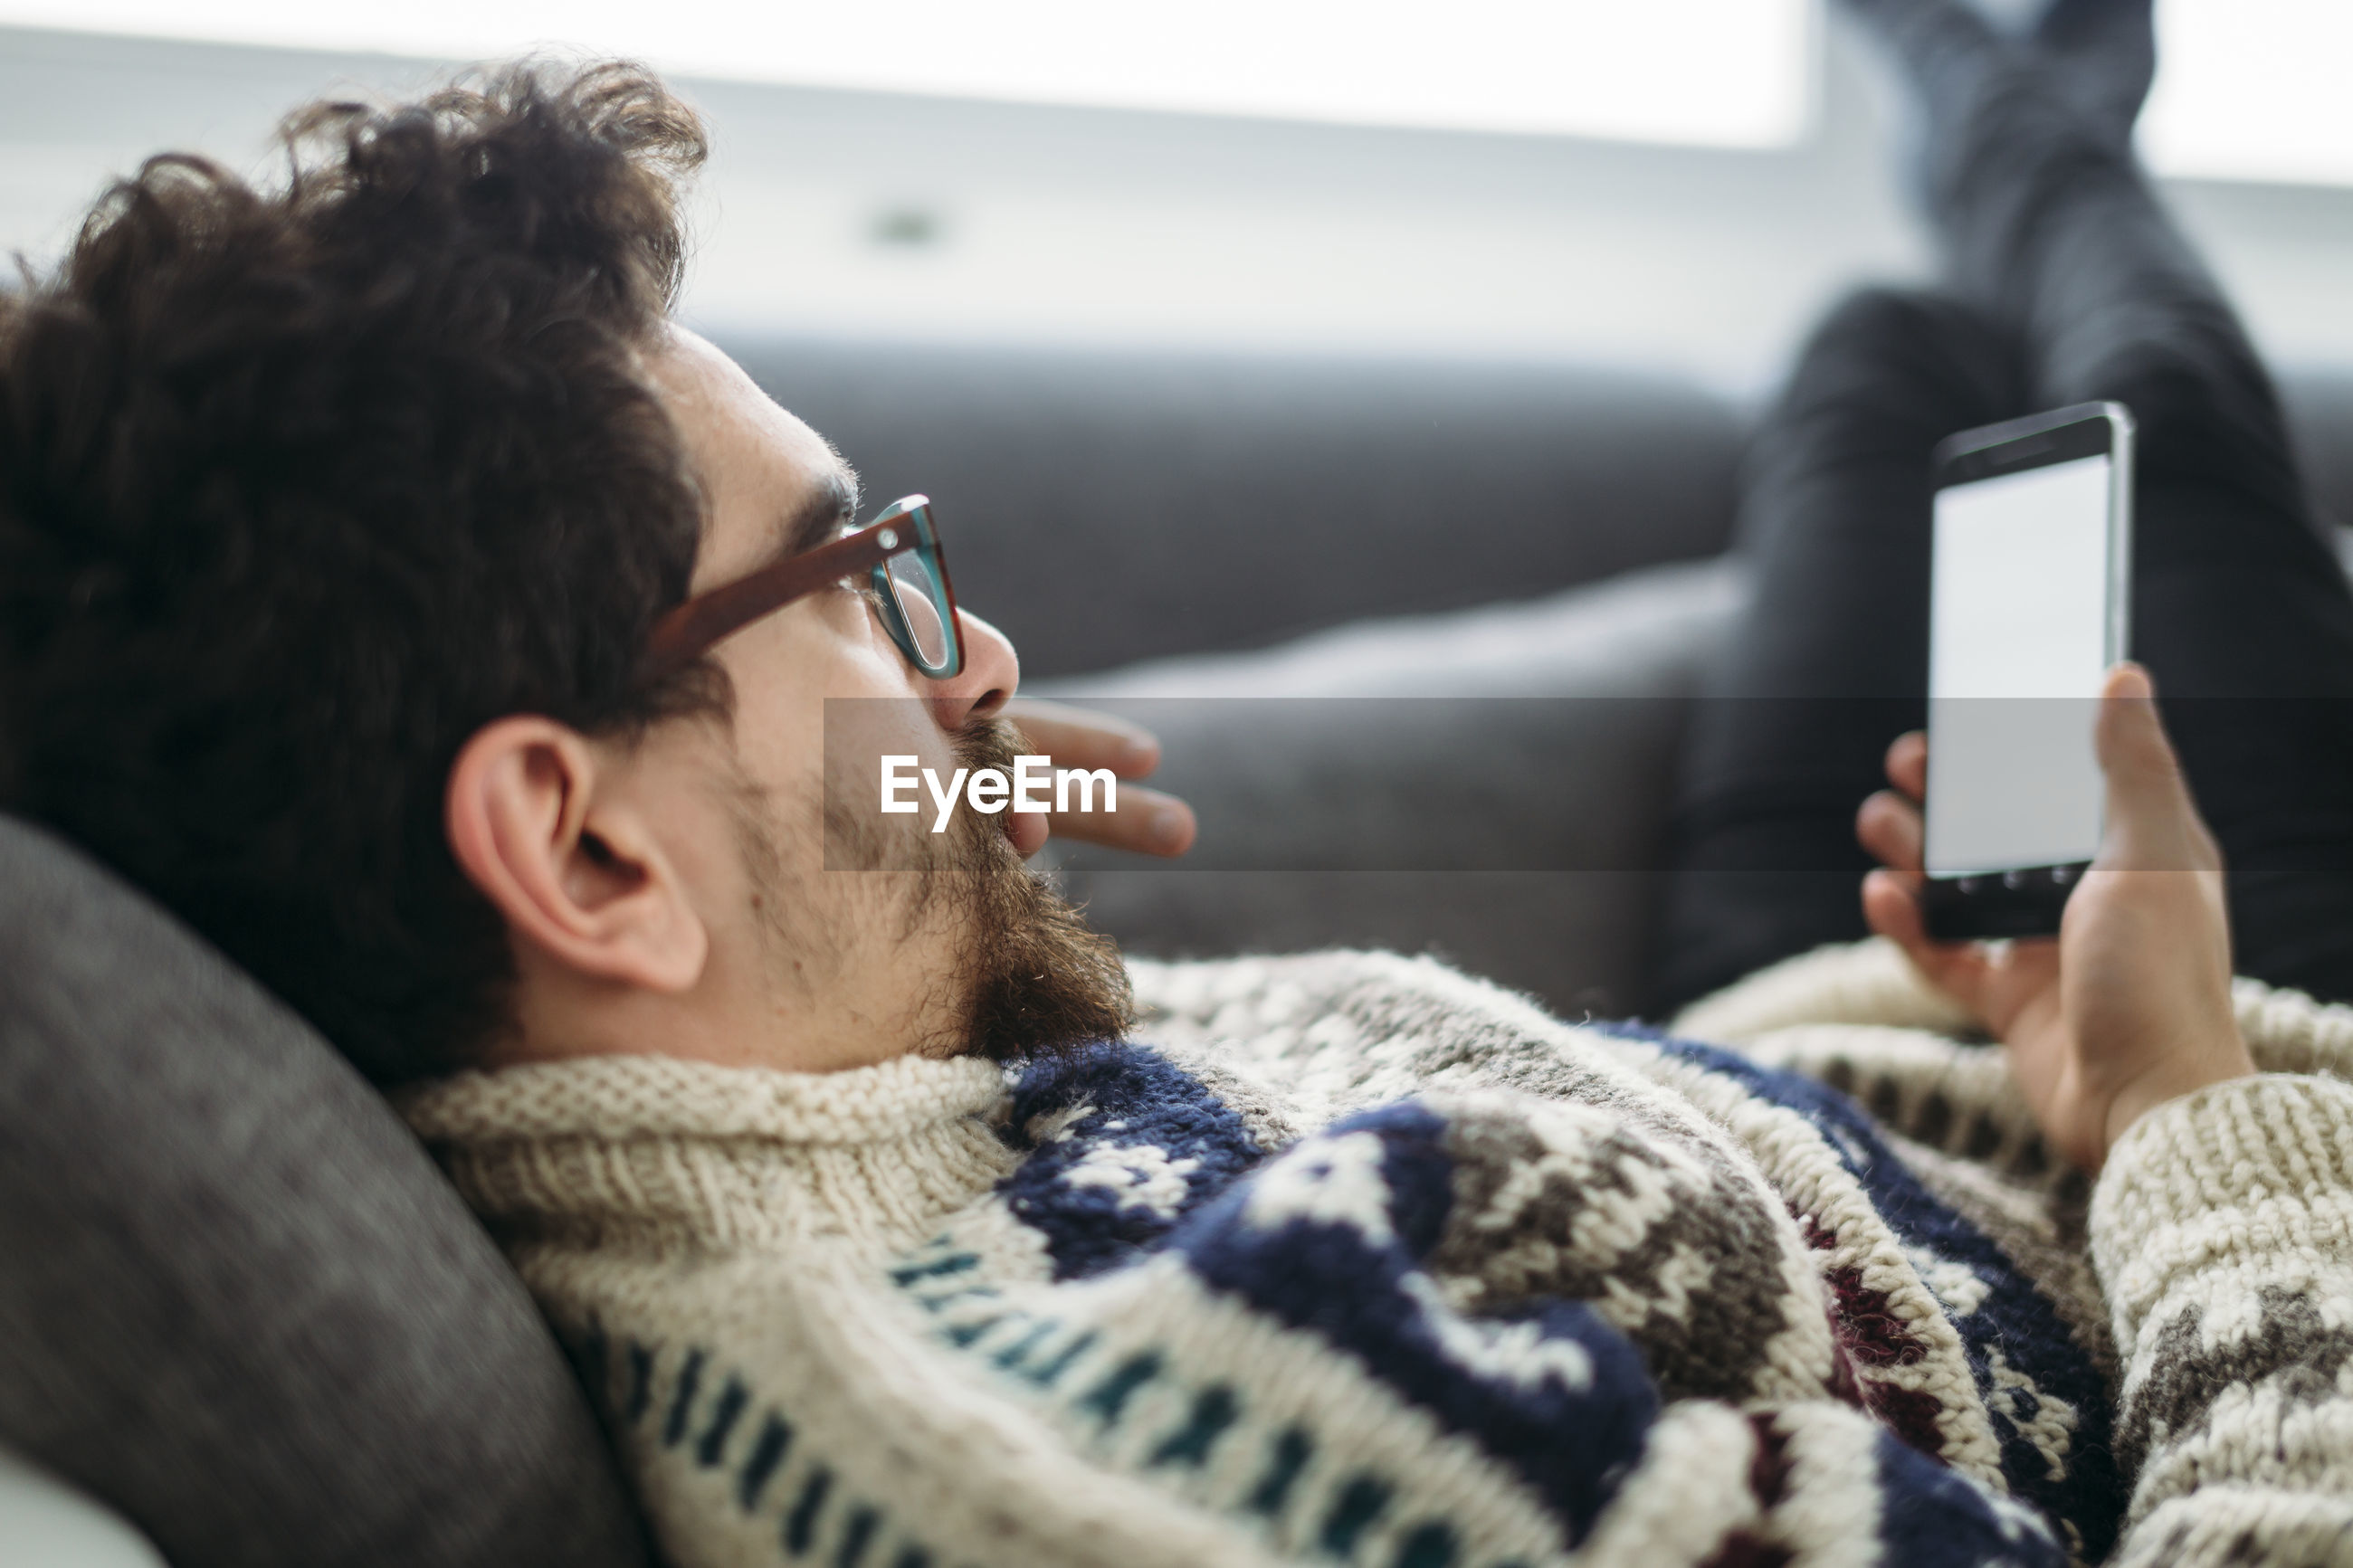 MIDSECTION OF MAN USING MOBILE PHONE IN LAPTOP